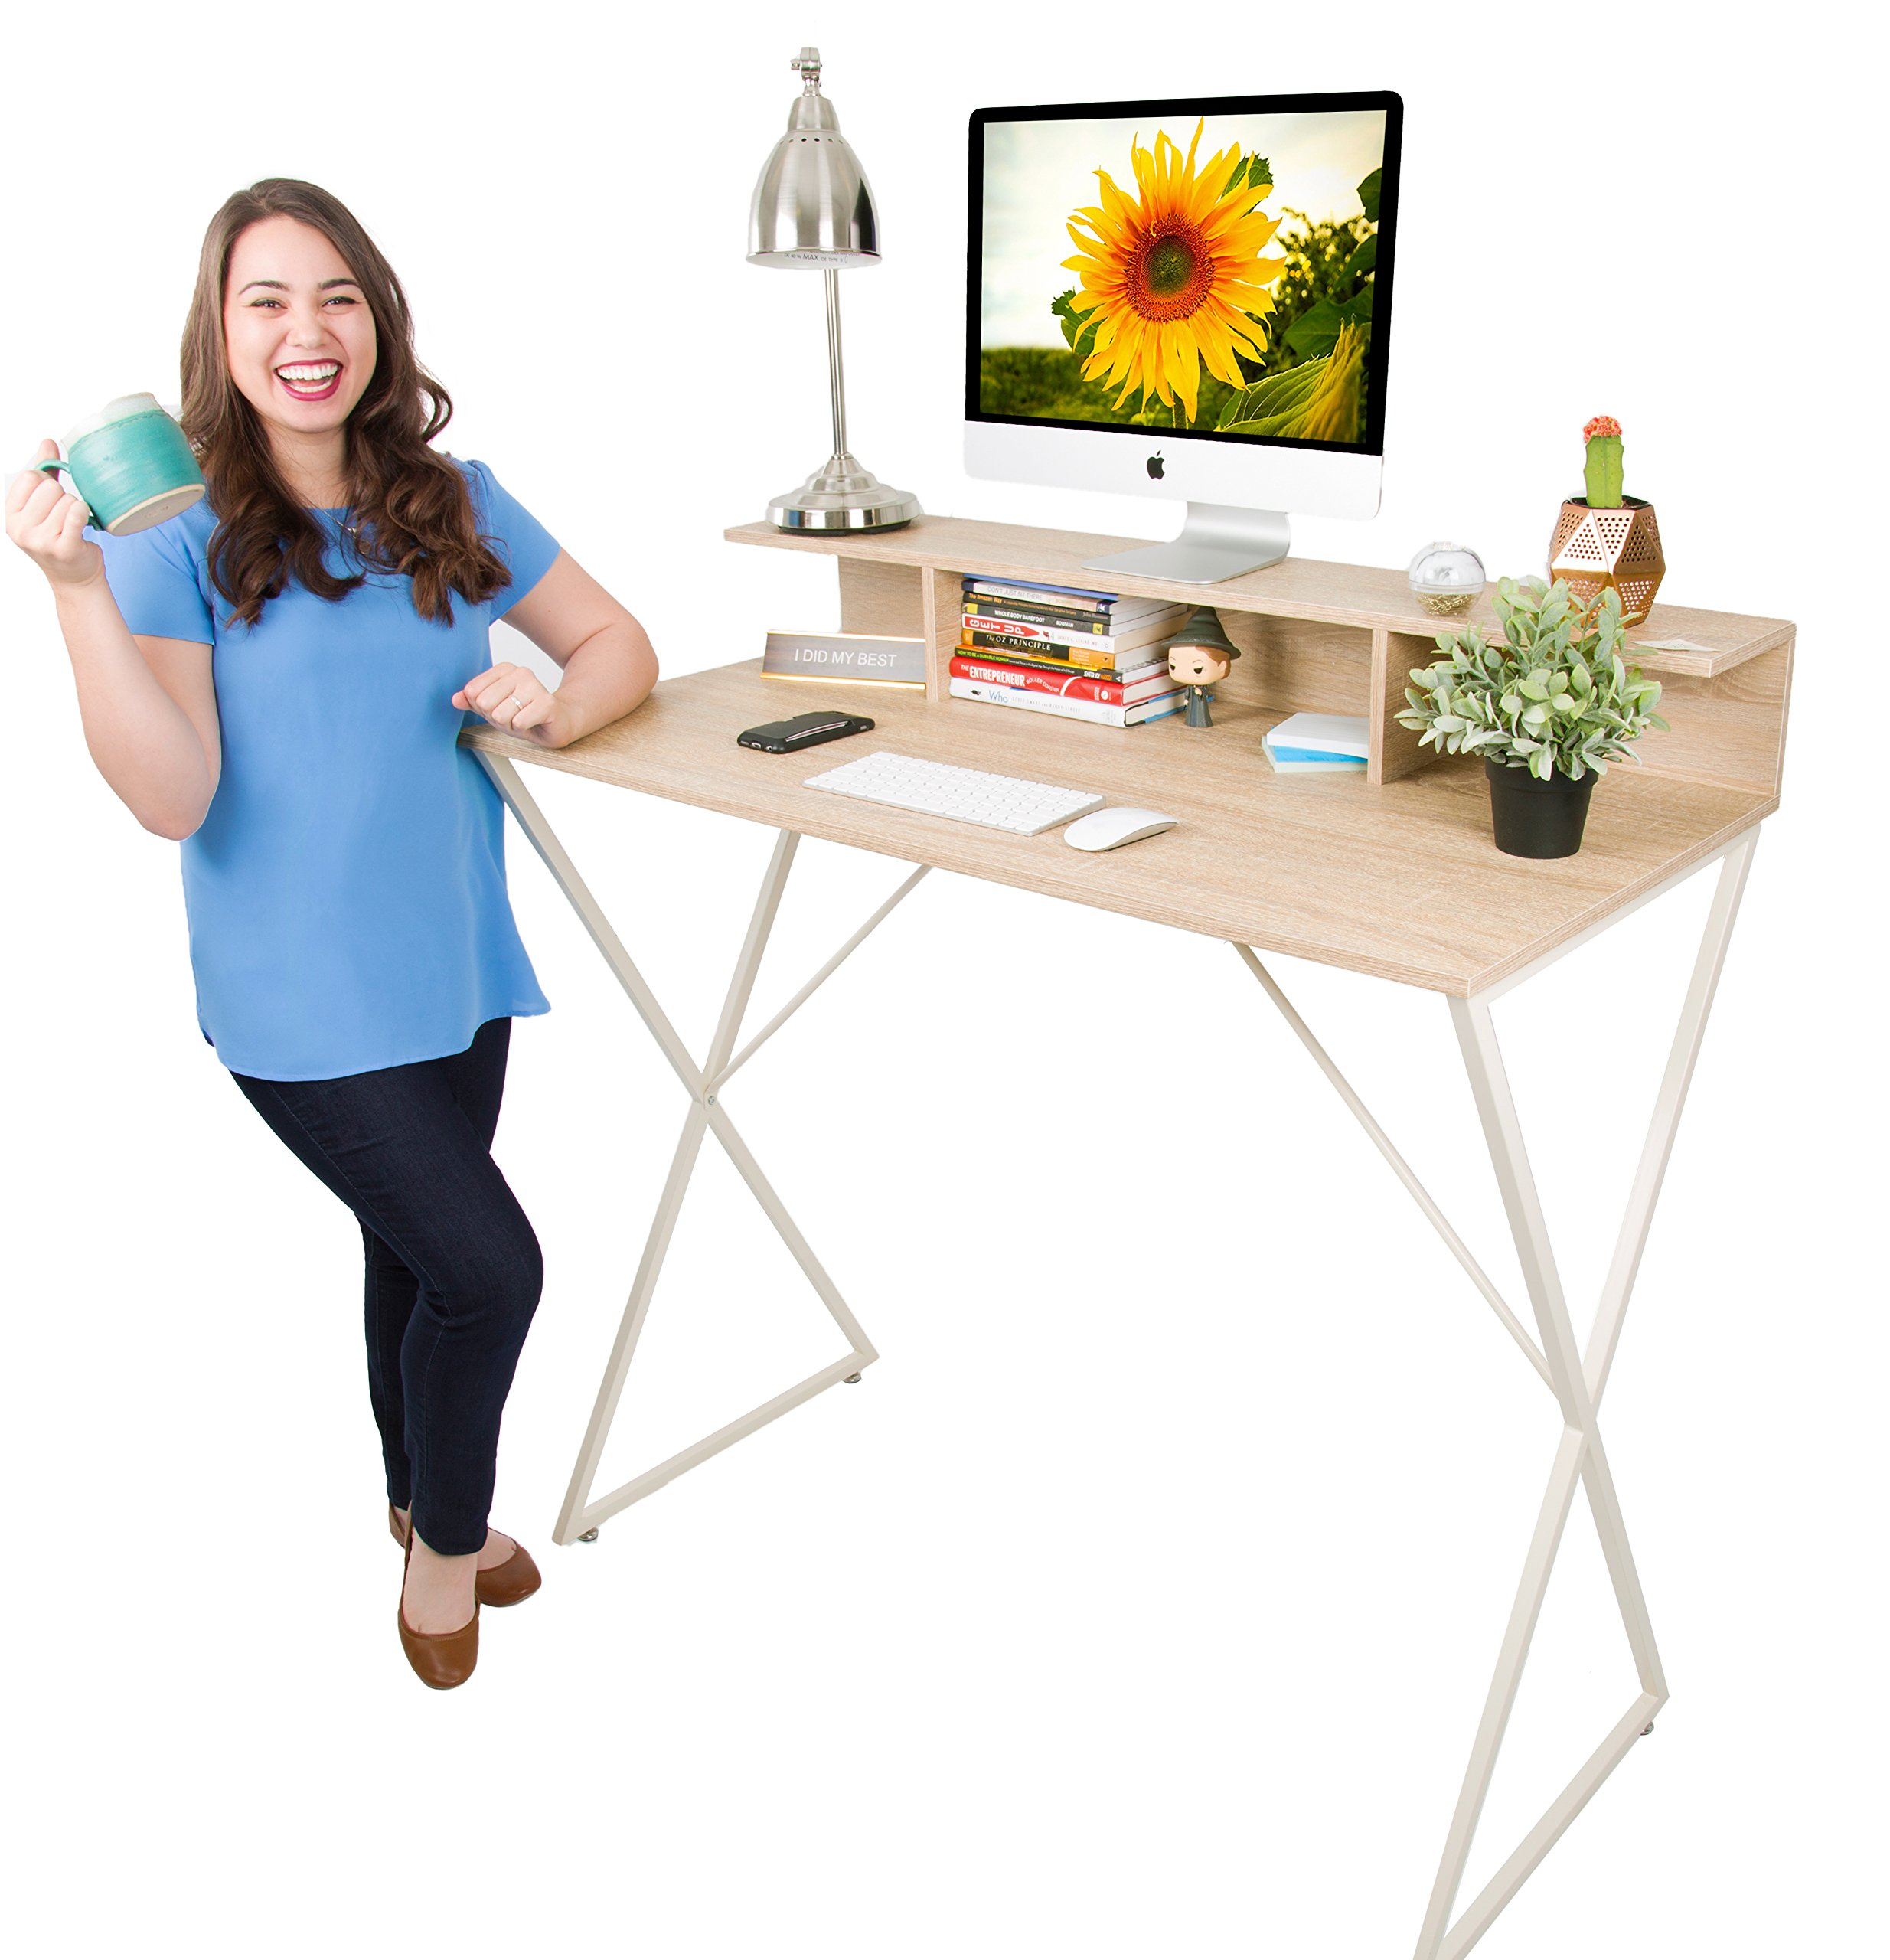 Joy Desk by Stand Steady - Modern Home Office Standing Desk Workstation with Storage Cubbies! - 47.5'' x 41.5'' by Stand Steady